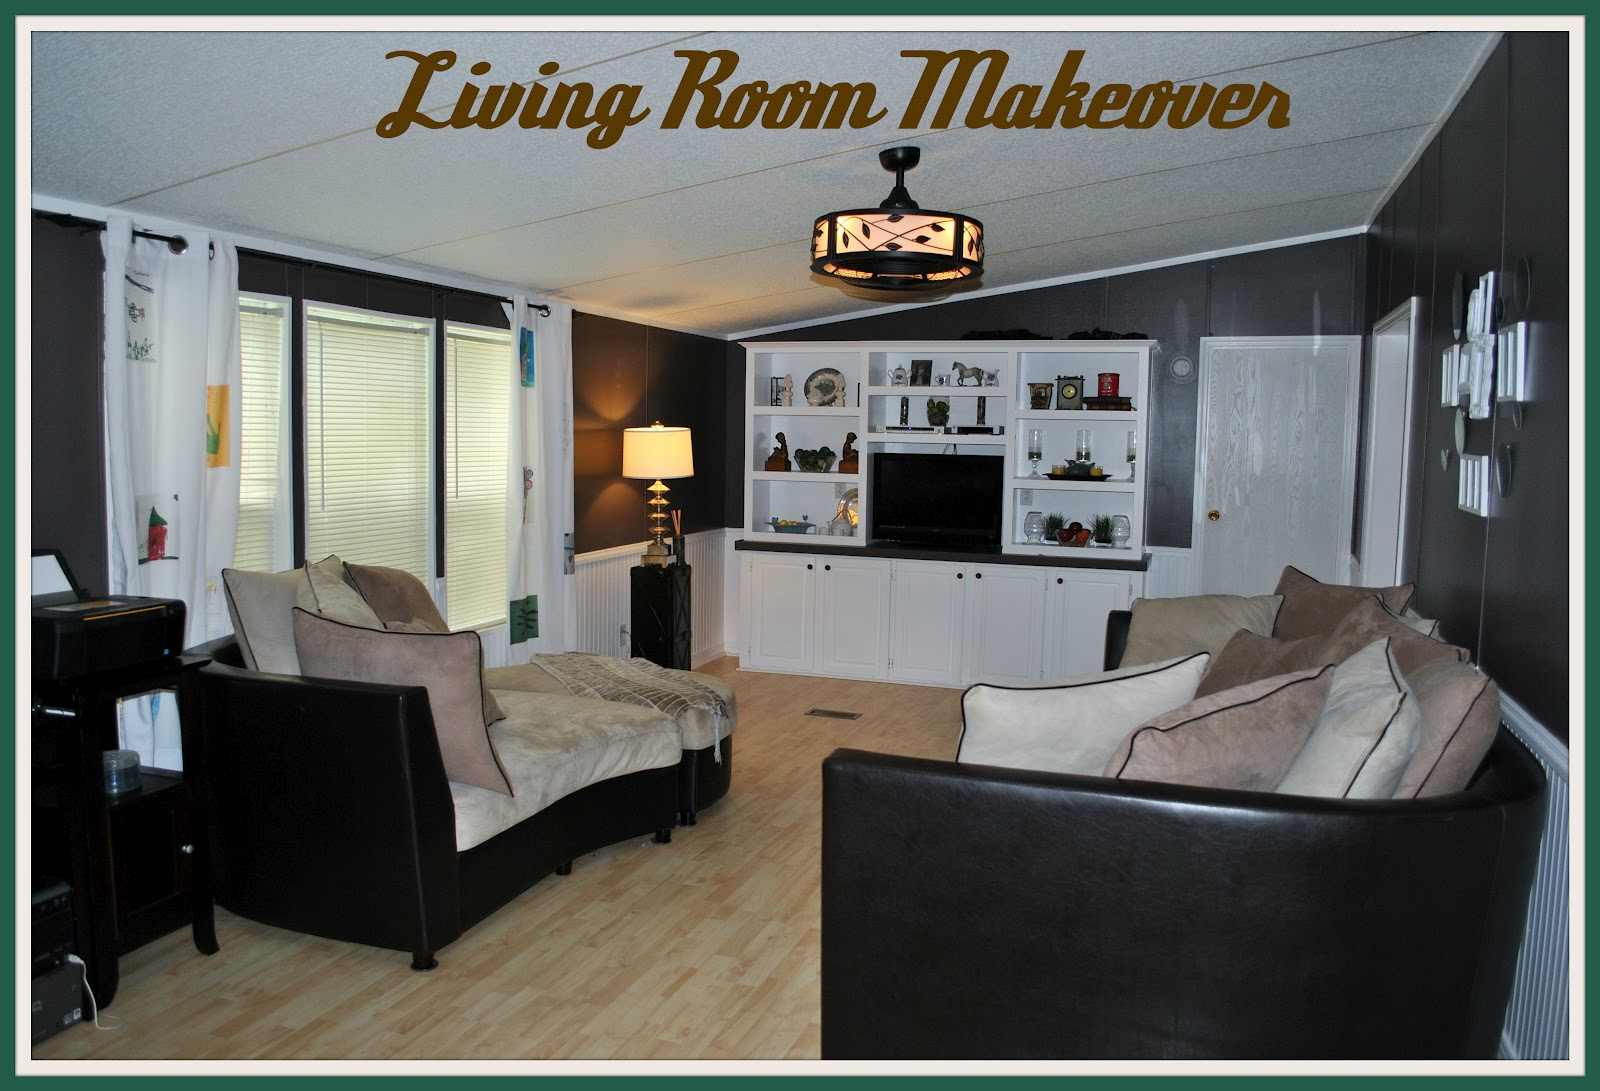 Life with 4 boys living room makeover before and after for How to makeover your living room